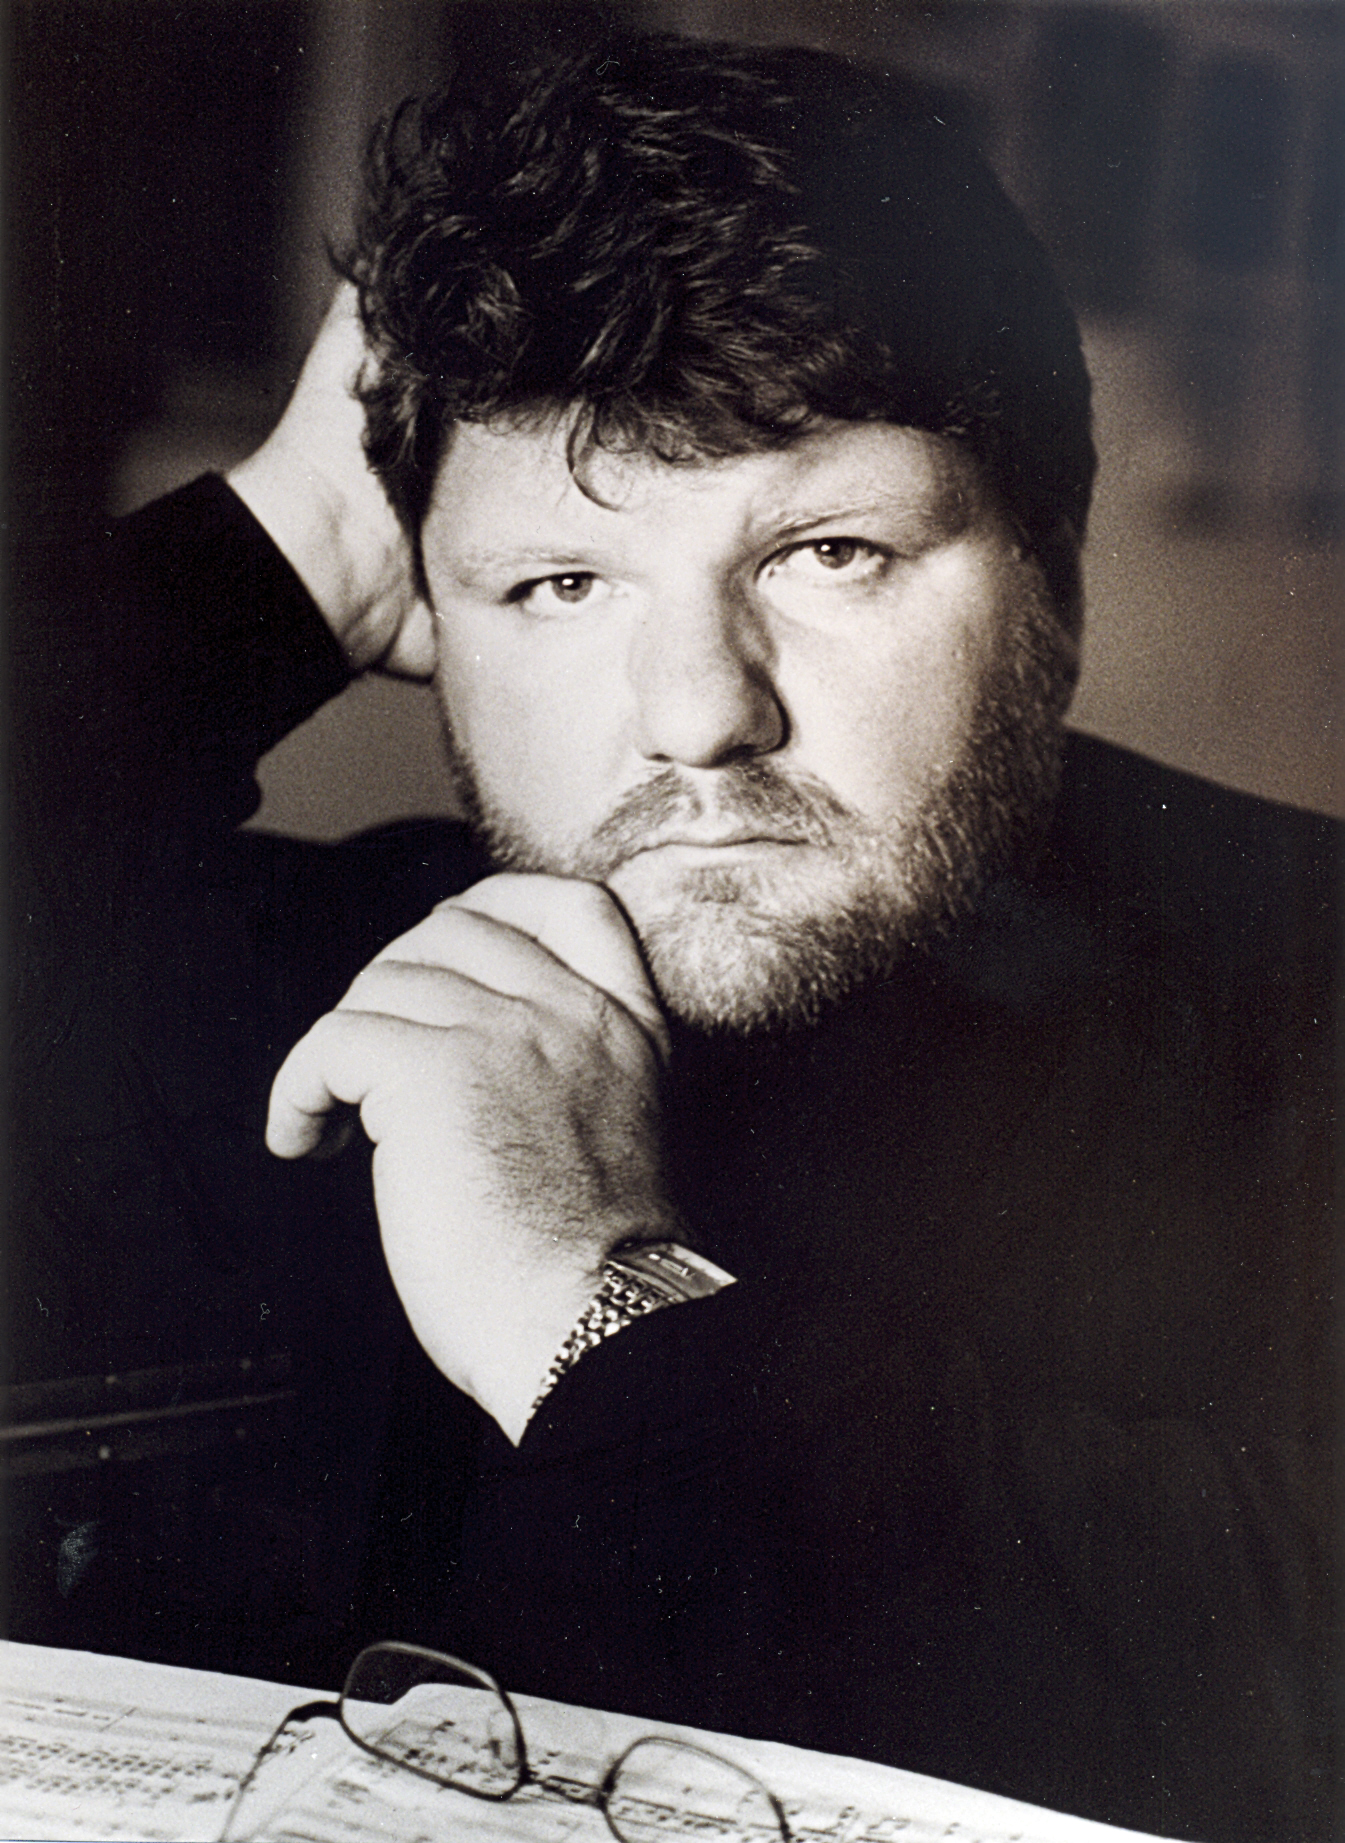 Dmitry Yablonsky, conductor